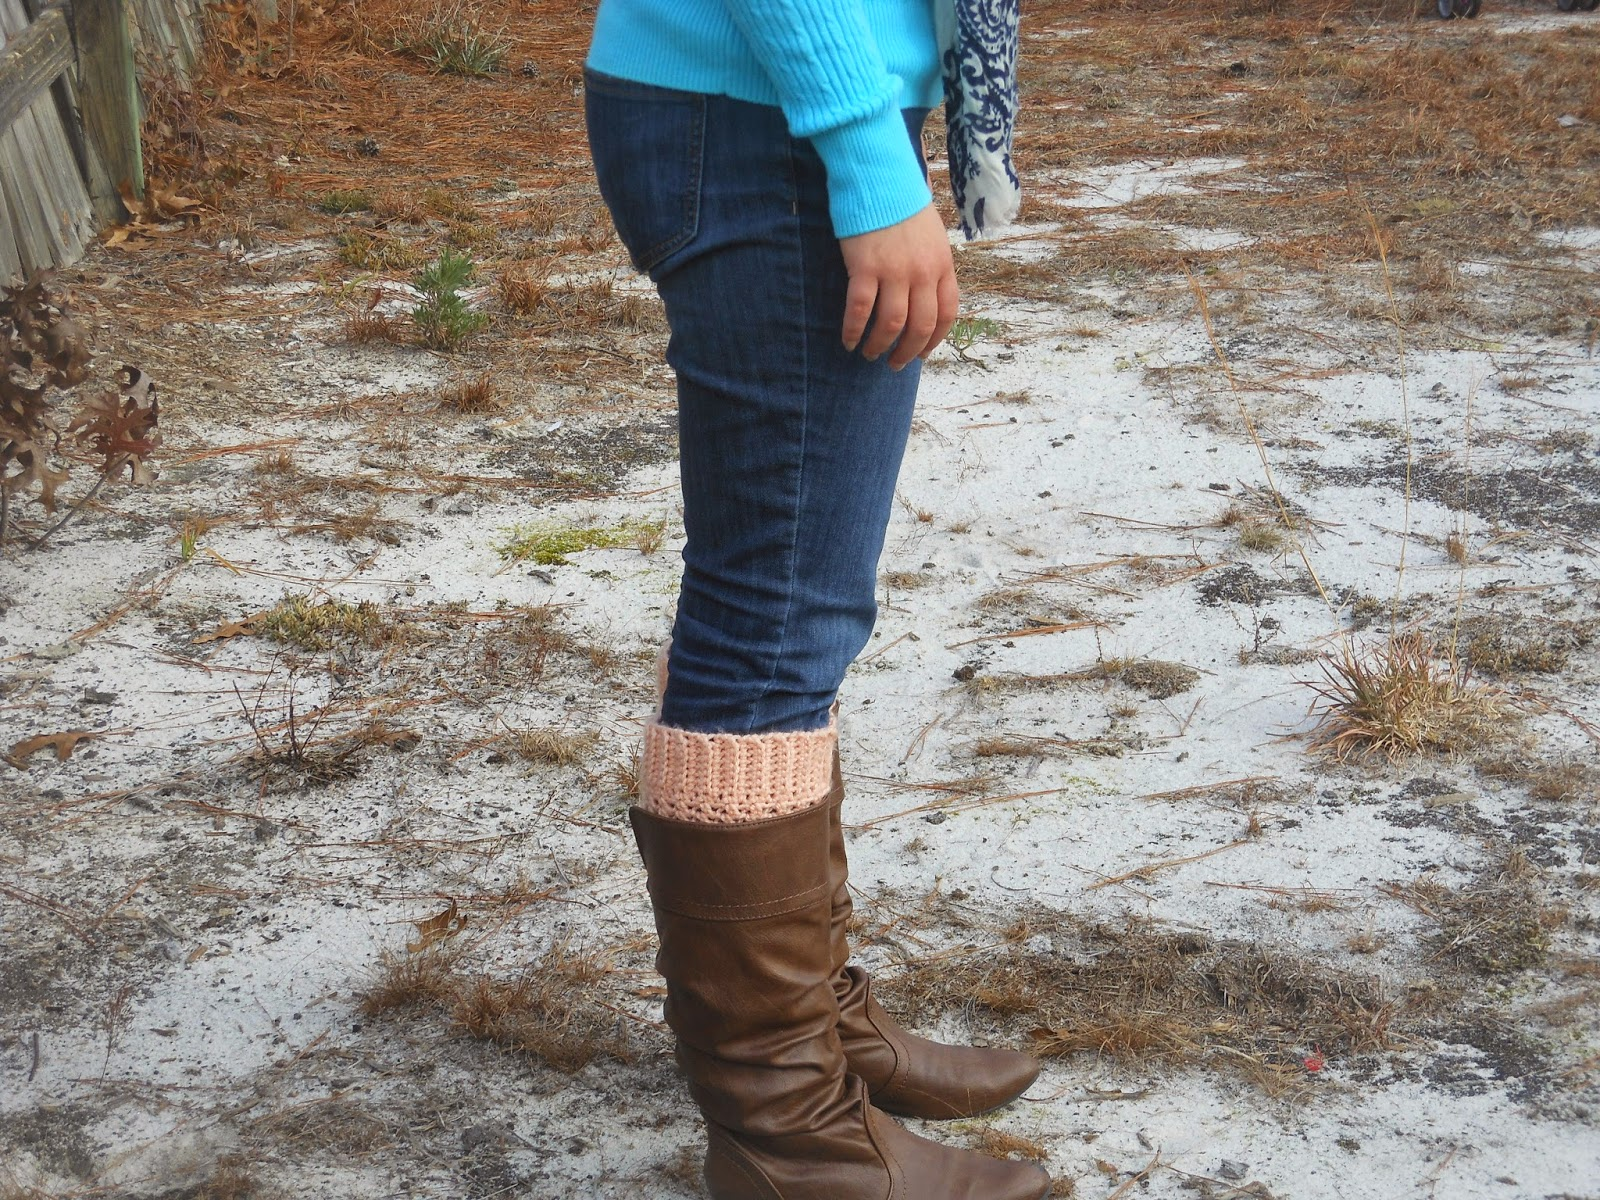 Turquoise and Peach. Turquoise sweater, jeans, navy and ivory scarf, peach boot socks, riding boots